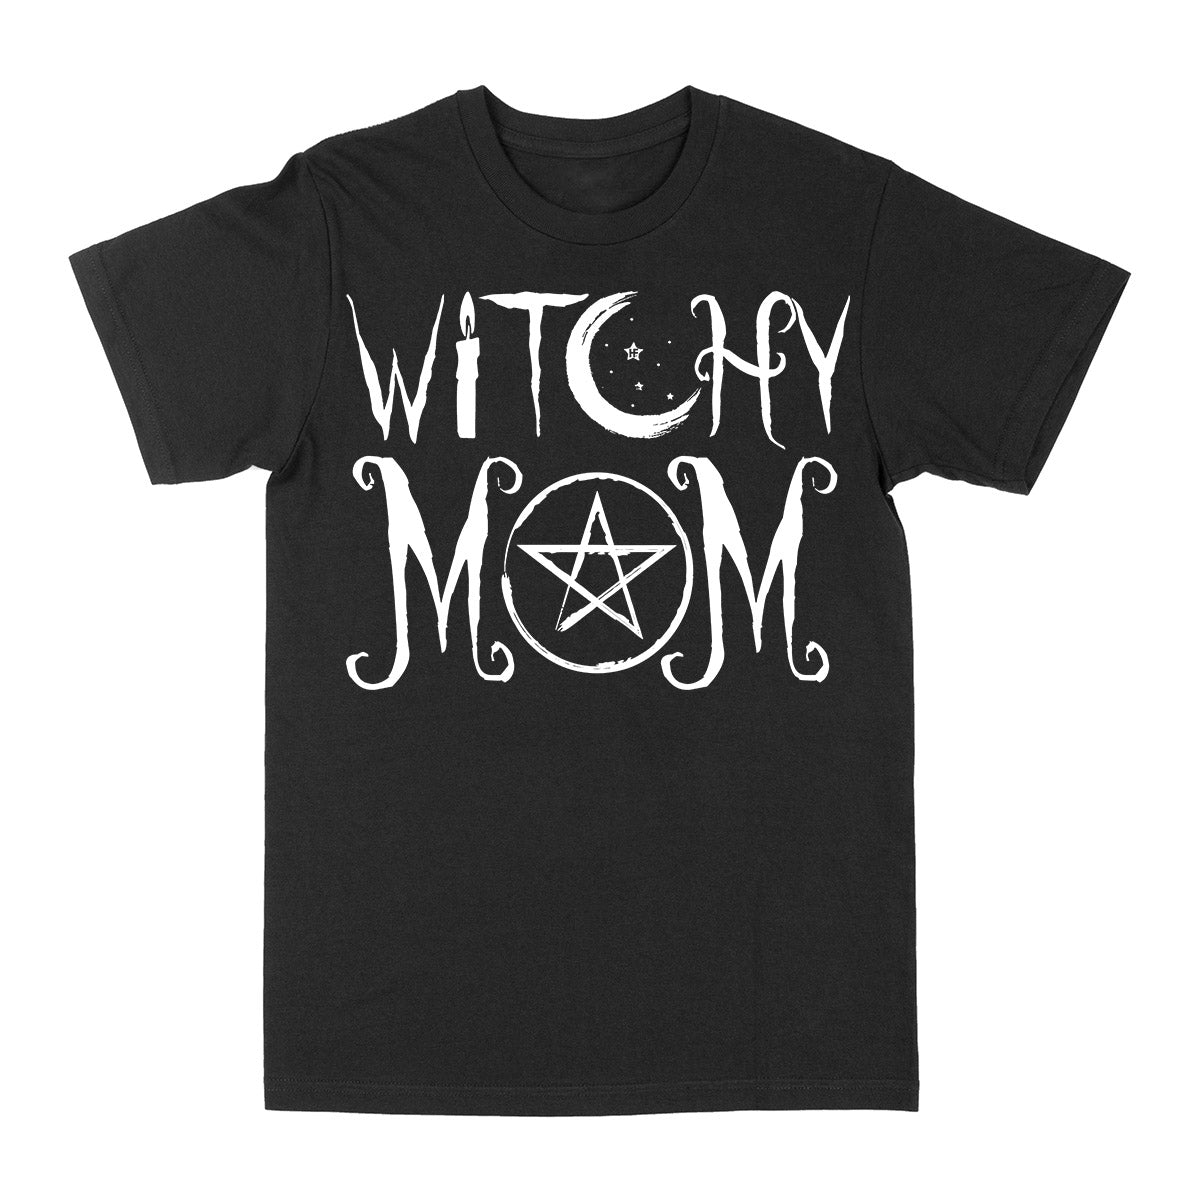 Witchy Mom EZ07 1104 Classic T-shirt